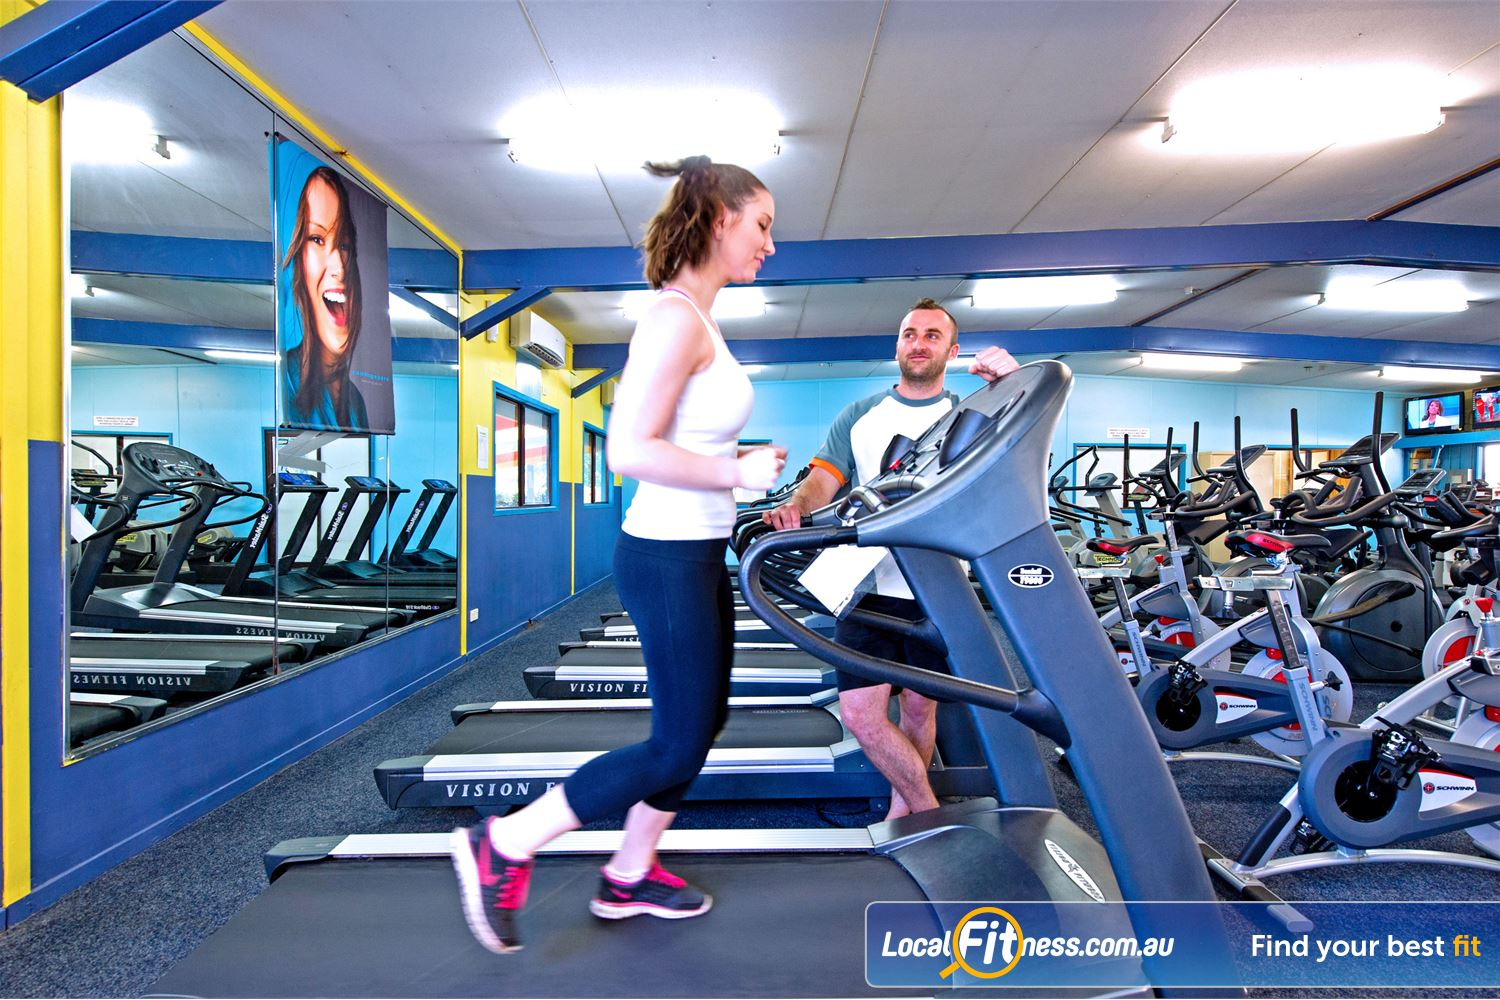 Waves Fitness and Aquatic Centre Near Bella Vista Baulkham Hills gym can incorporate cardio training into your workout.